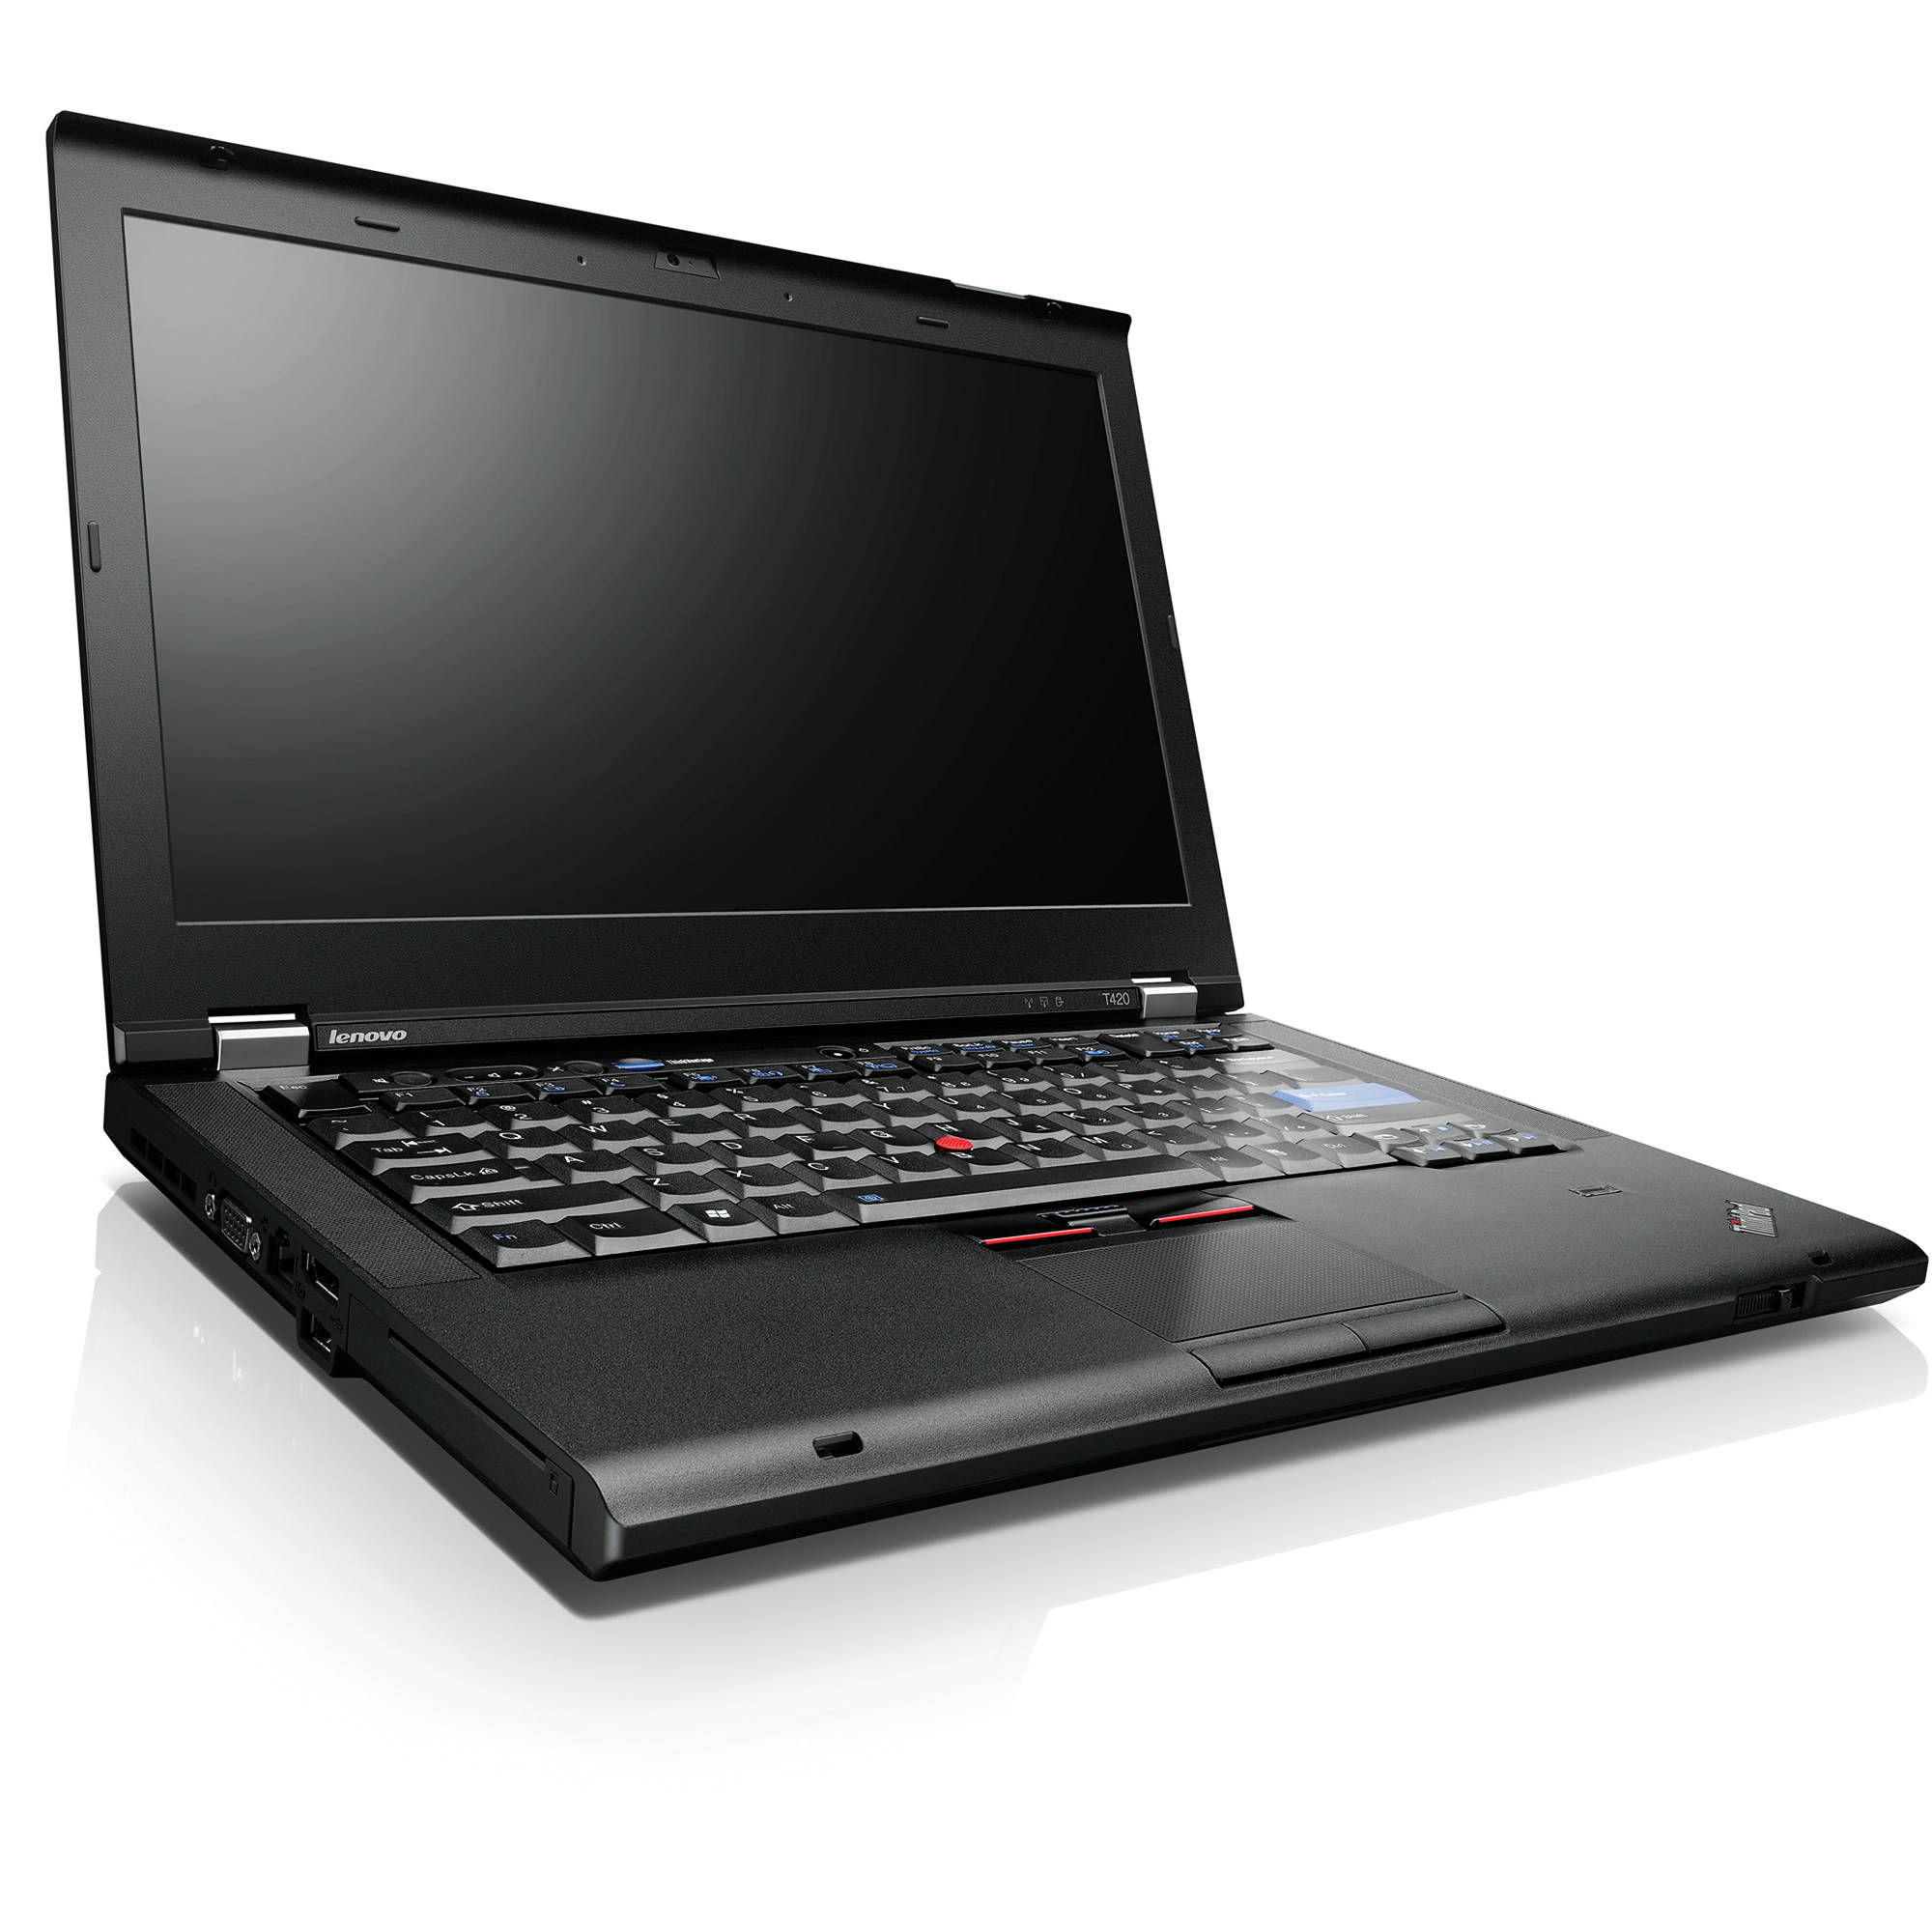 Lenovo 32492HU ThinkPad X201 12 1 Notebook additionally Adobe Premiere Professional Cs6 Crack together with Microsoft Visio Professional 2016 32 64 Bit License Download furthermore Lenovo 4105R9U ThinkStation S20 Workstation also 311345377849. on windows 7 professional product code